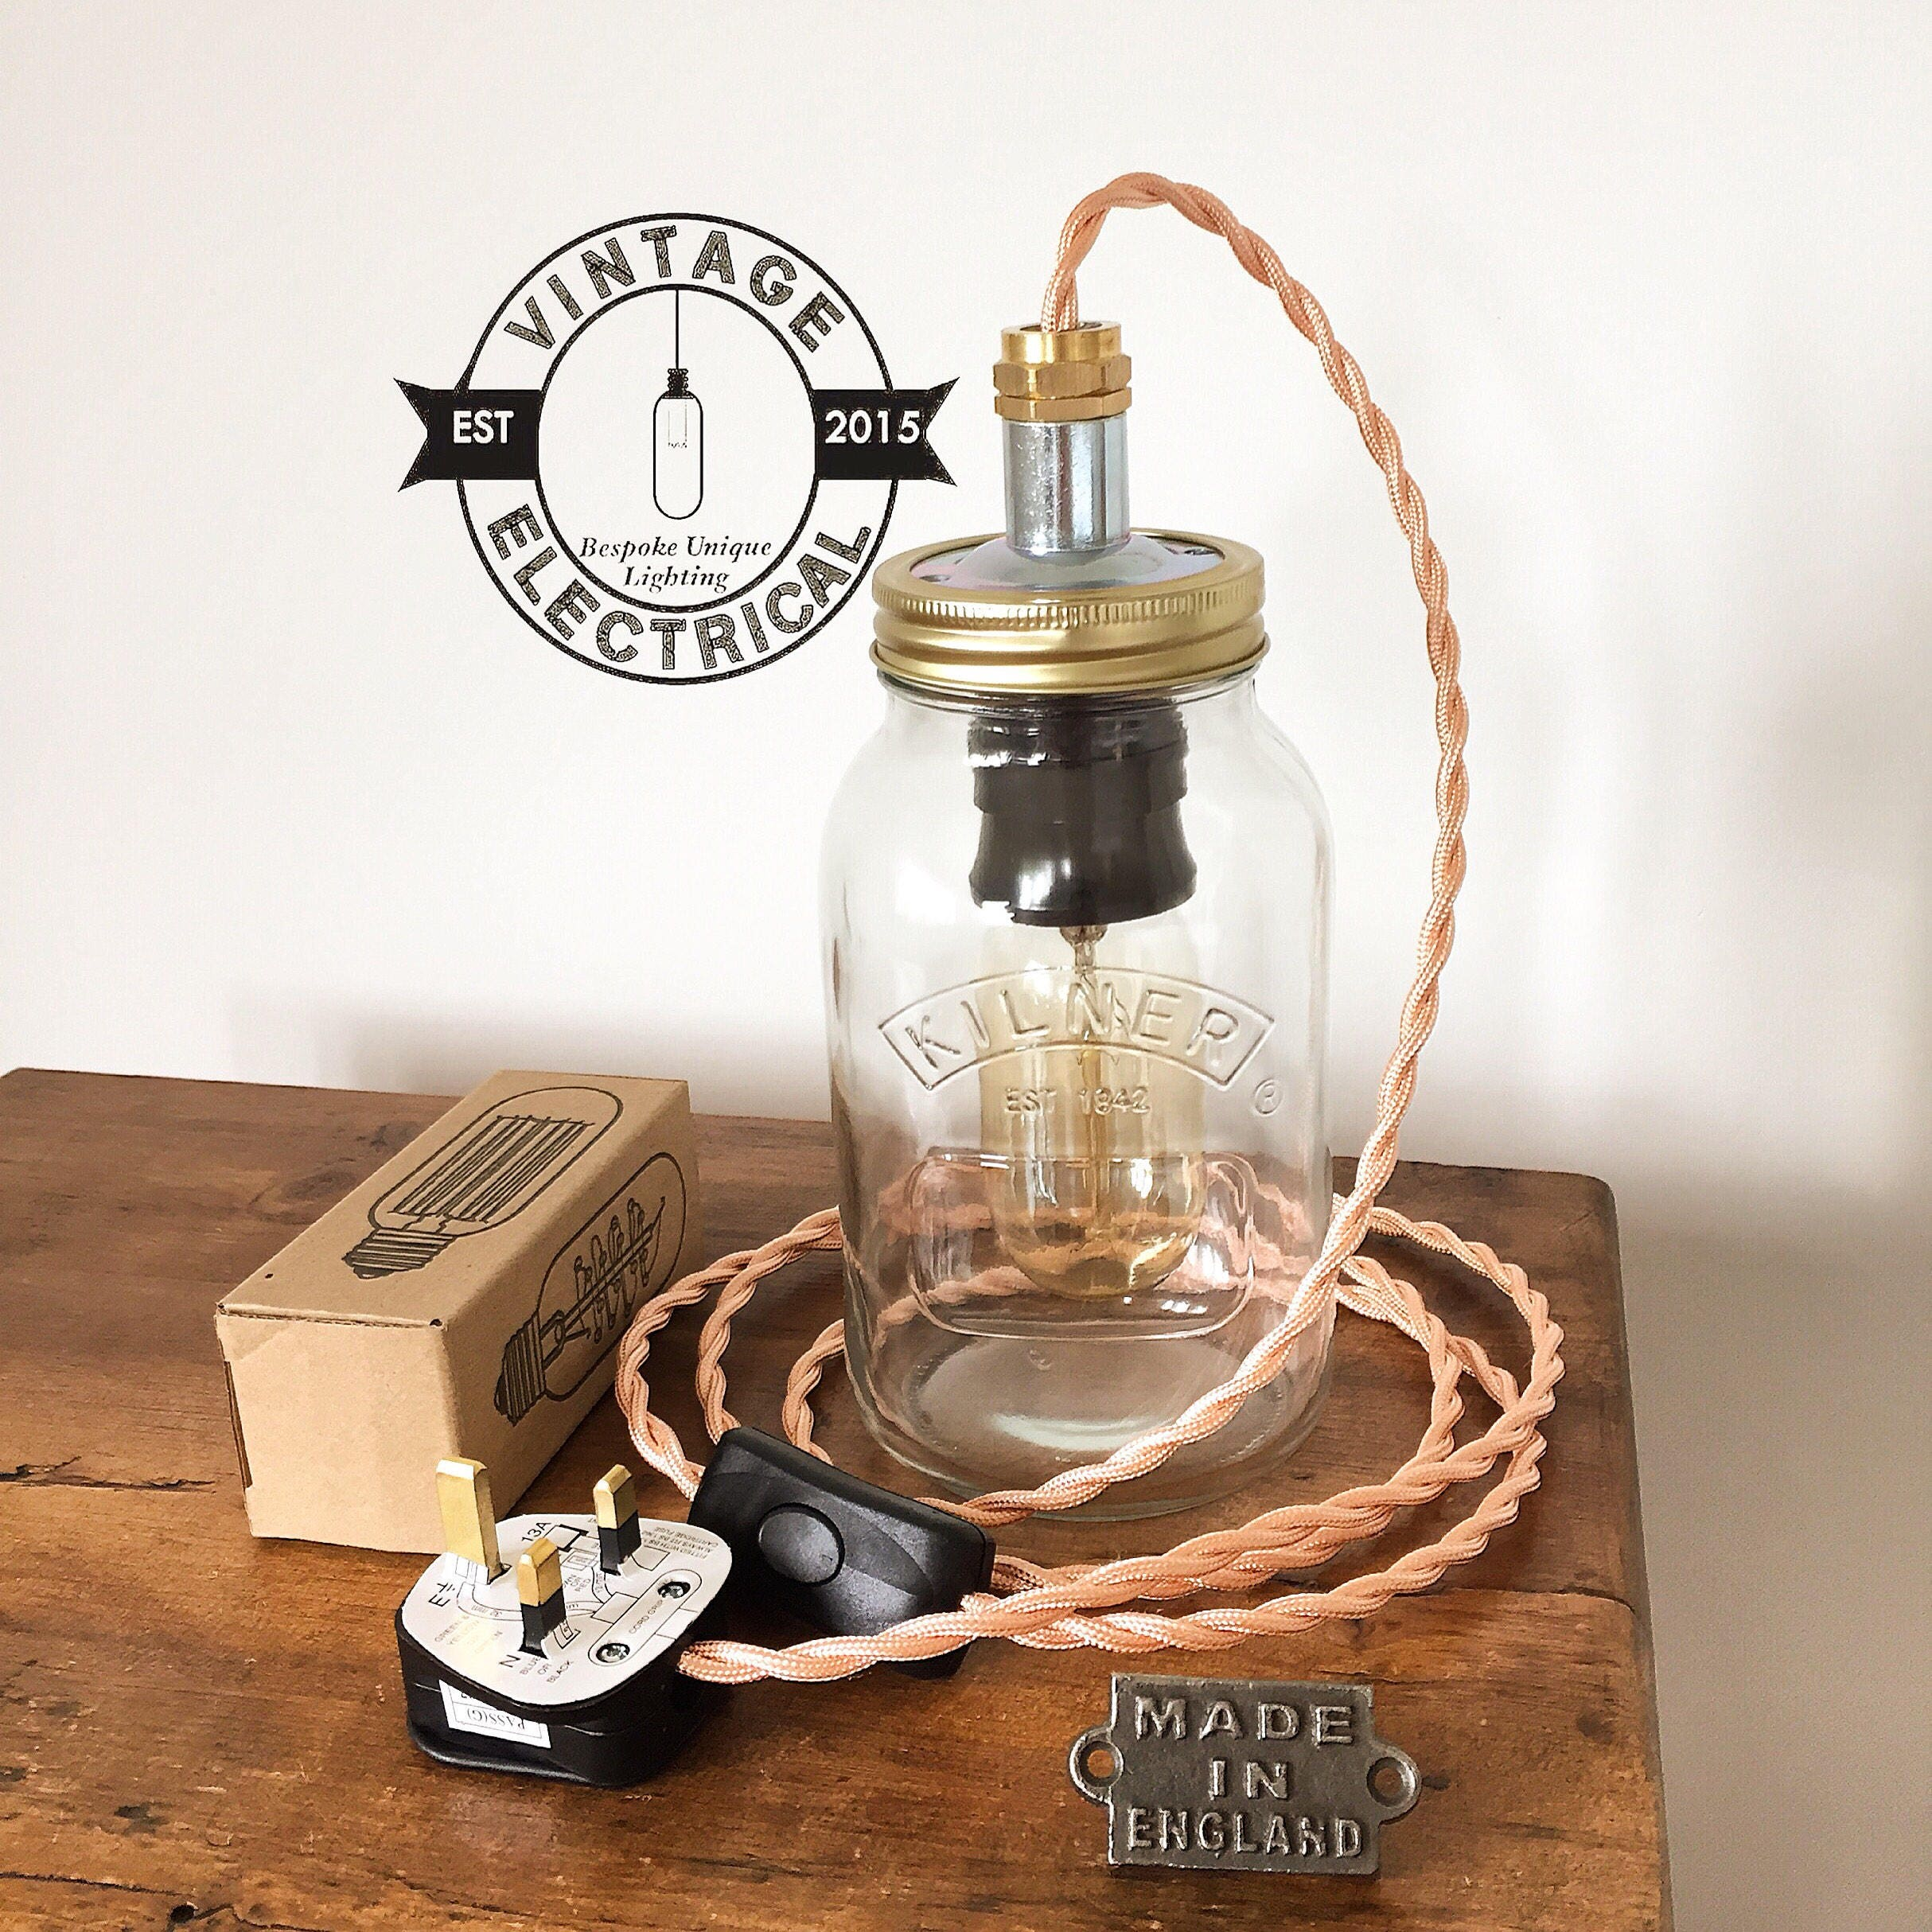 Table Lamp Wiring Uk Diagrams For Dummies A Switch The Kilner Copper Mason Jar Light Industrial Vintage Edison Rh Electrical Co Diagram